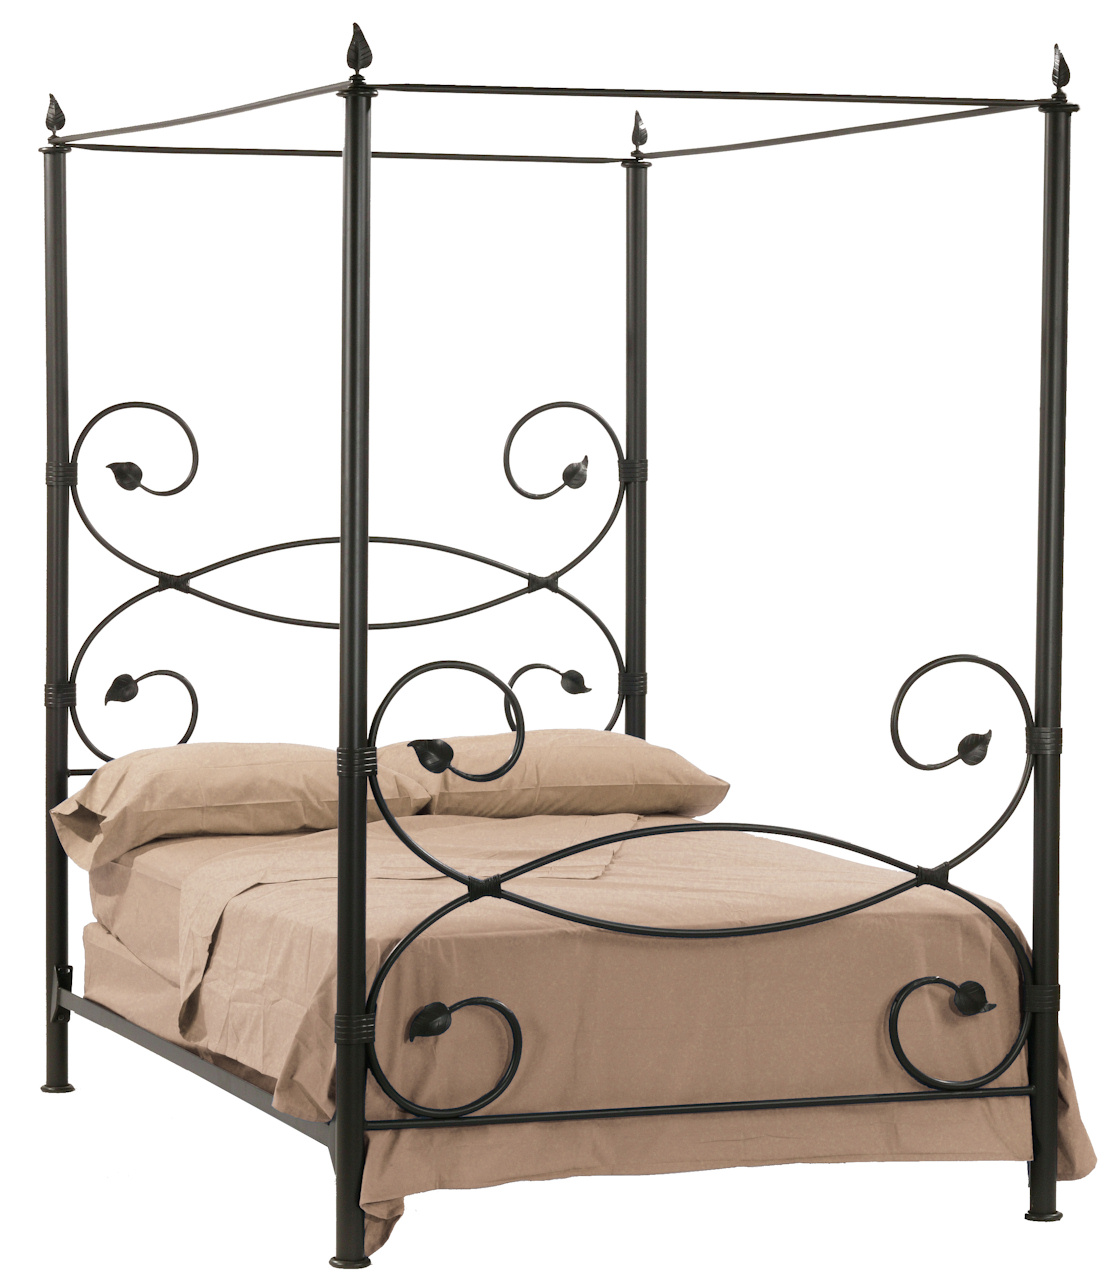 Exquisite Full Canopy Bed - Ashley Furniture HomeStore: Home